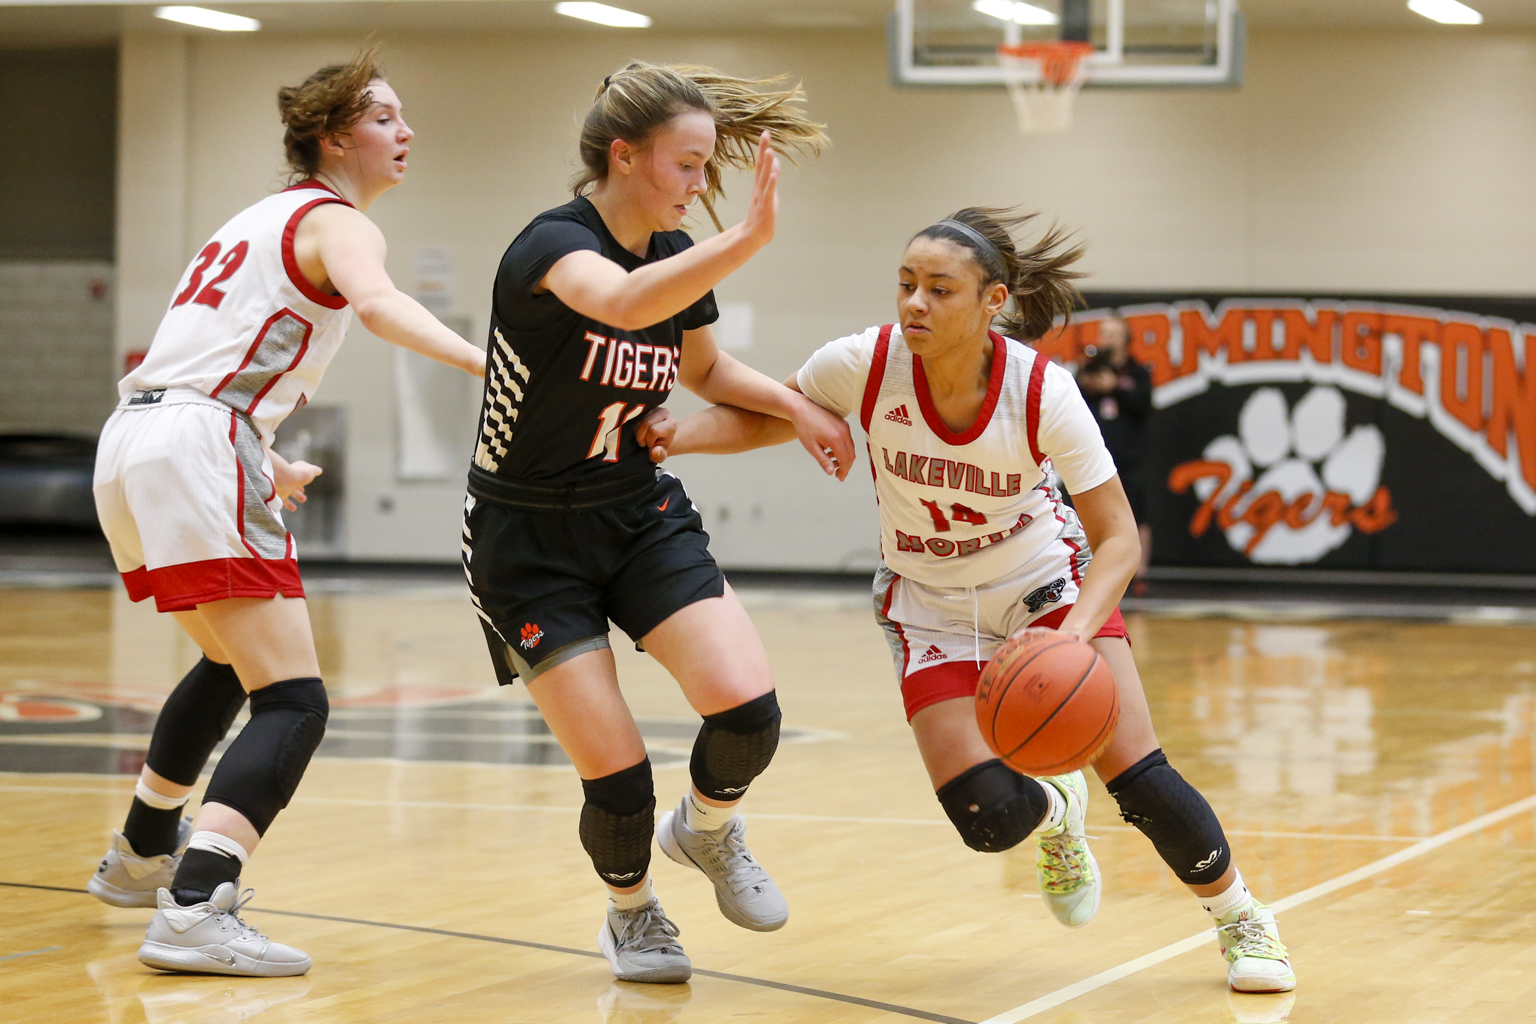 Lakeville North's Sarah Kuma (14) tries to create space to drive toward the basket as Farmington's Peyton Blandin (11) defends Tuesday night. The Panthers fell to the Tigers 64-44 in Farmington. Photo by Jeff Lawler, SportsEngine